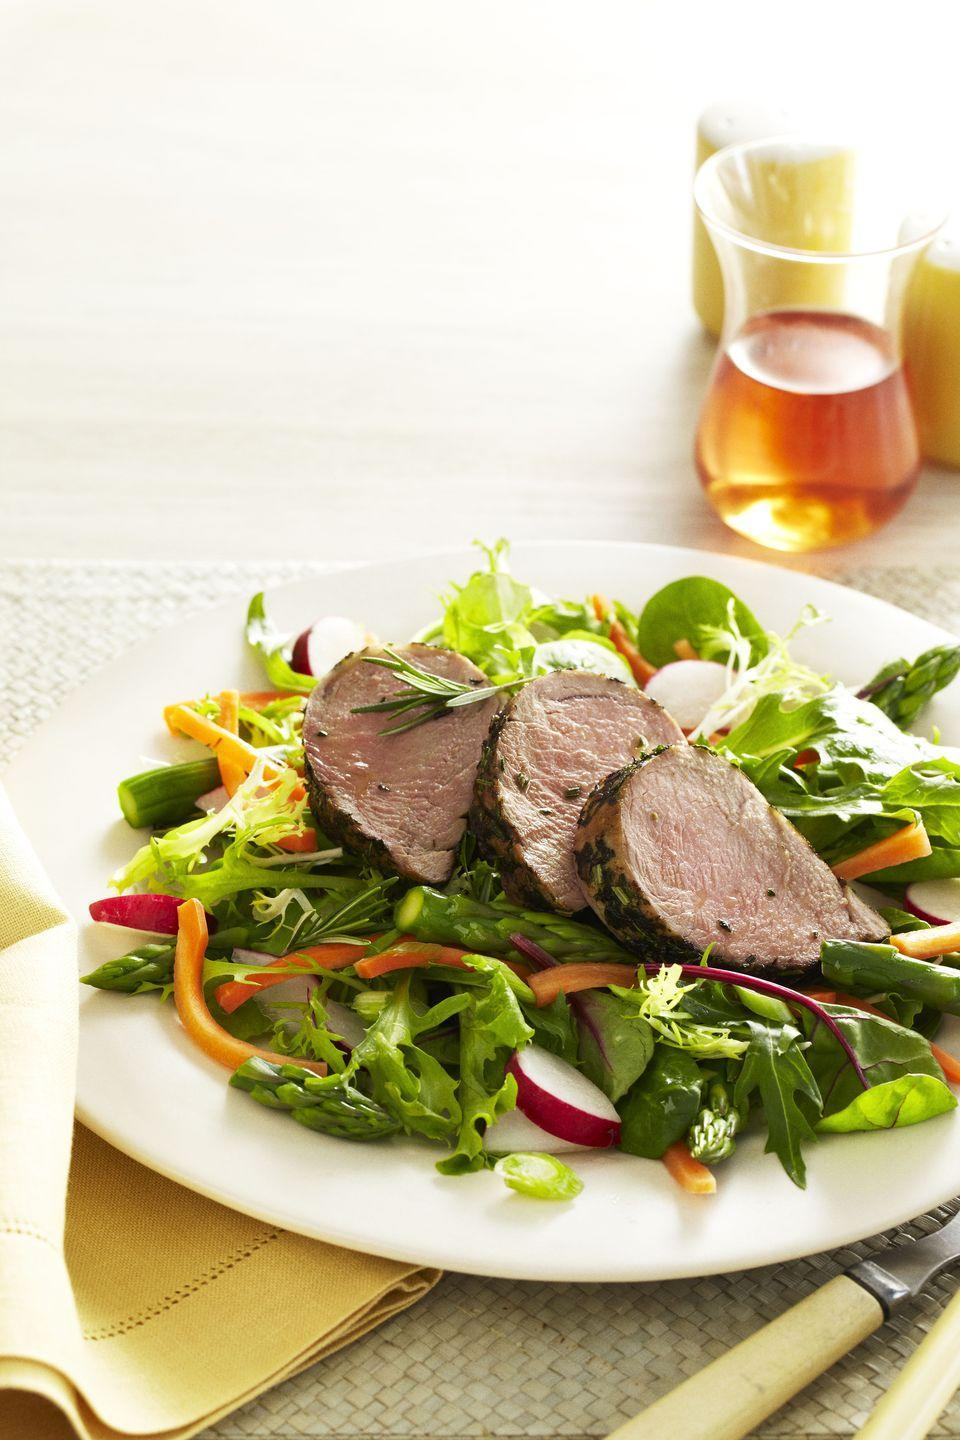 """<p>Roasted pork tenderloin is super versatile; it can be served as the centerpiece of your Christmas feast <em>or </em>simply sliced atop fresh greens. </p><p><em><a href=""""https://www.goodhousekeeping.com/food-recipes/a10949/herbed-pork-medallions-recipe-ghk0511/"""" rel=""""nofollow noopener"""" target=""""_blank"""" data-ylk=""""slk:Get the recipe for Herbed Pork Medallions »"""" class=""""link rapid-noclick-resp"""">Get the recipe for Herbed Pork Medallions »</a></em> </p>"""